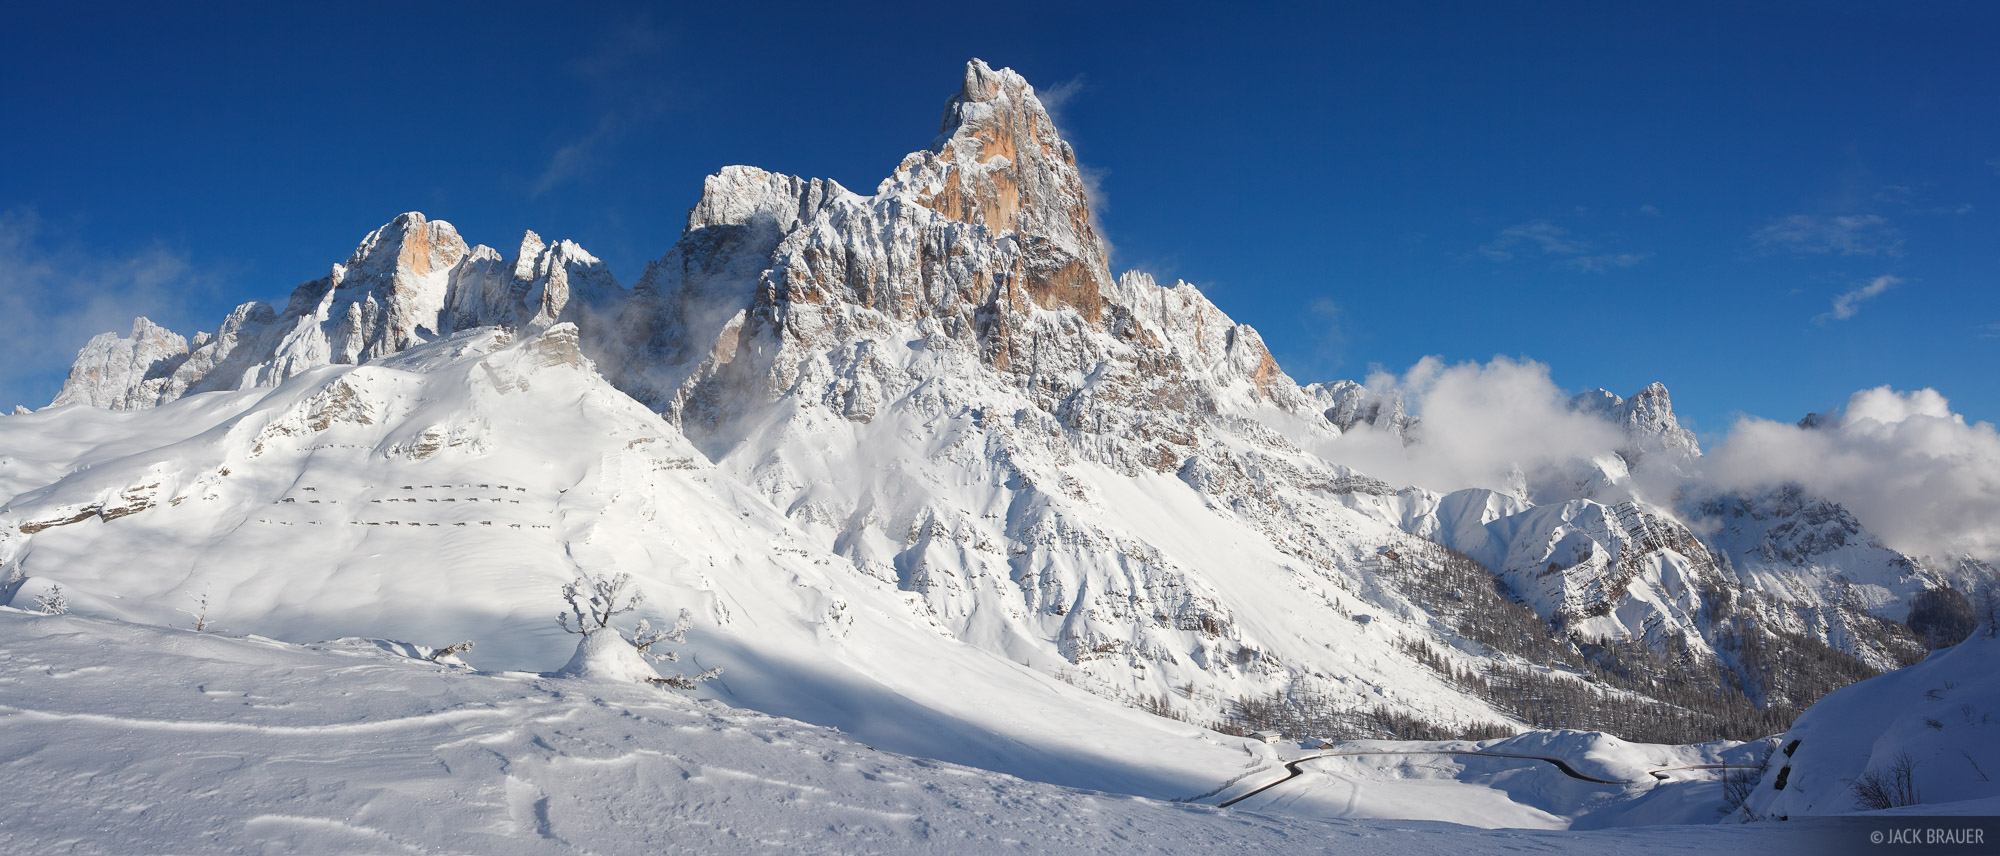 Panorama of Cimon della Pala and the Pale di San Martino range on a glorious December afternoon after a storm has lifted.